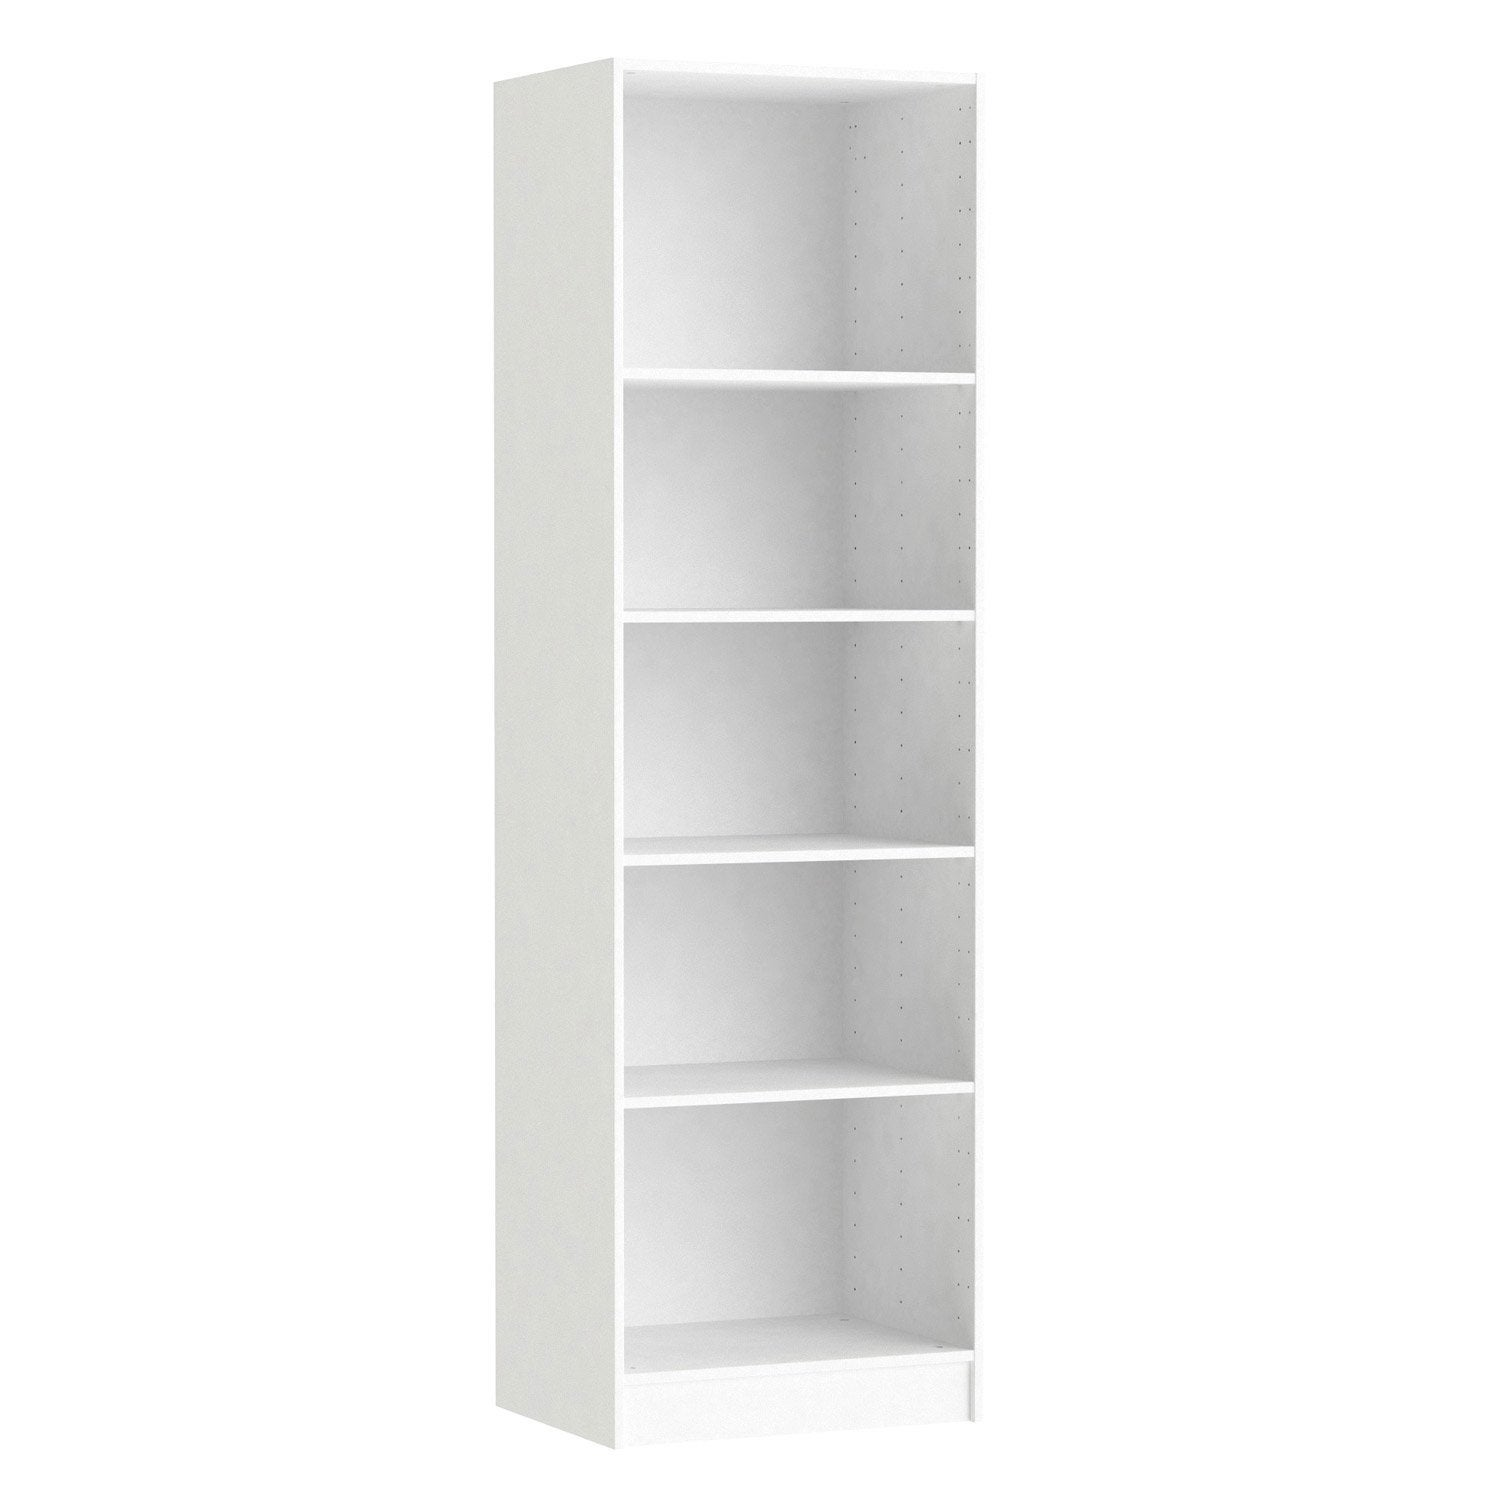 caisson spaceo home 200 x 60 x 45 cm blanc leroy merlin